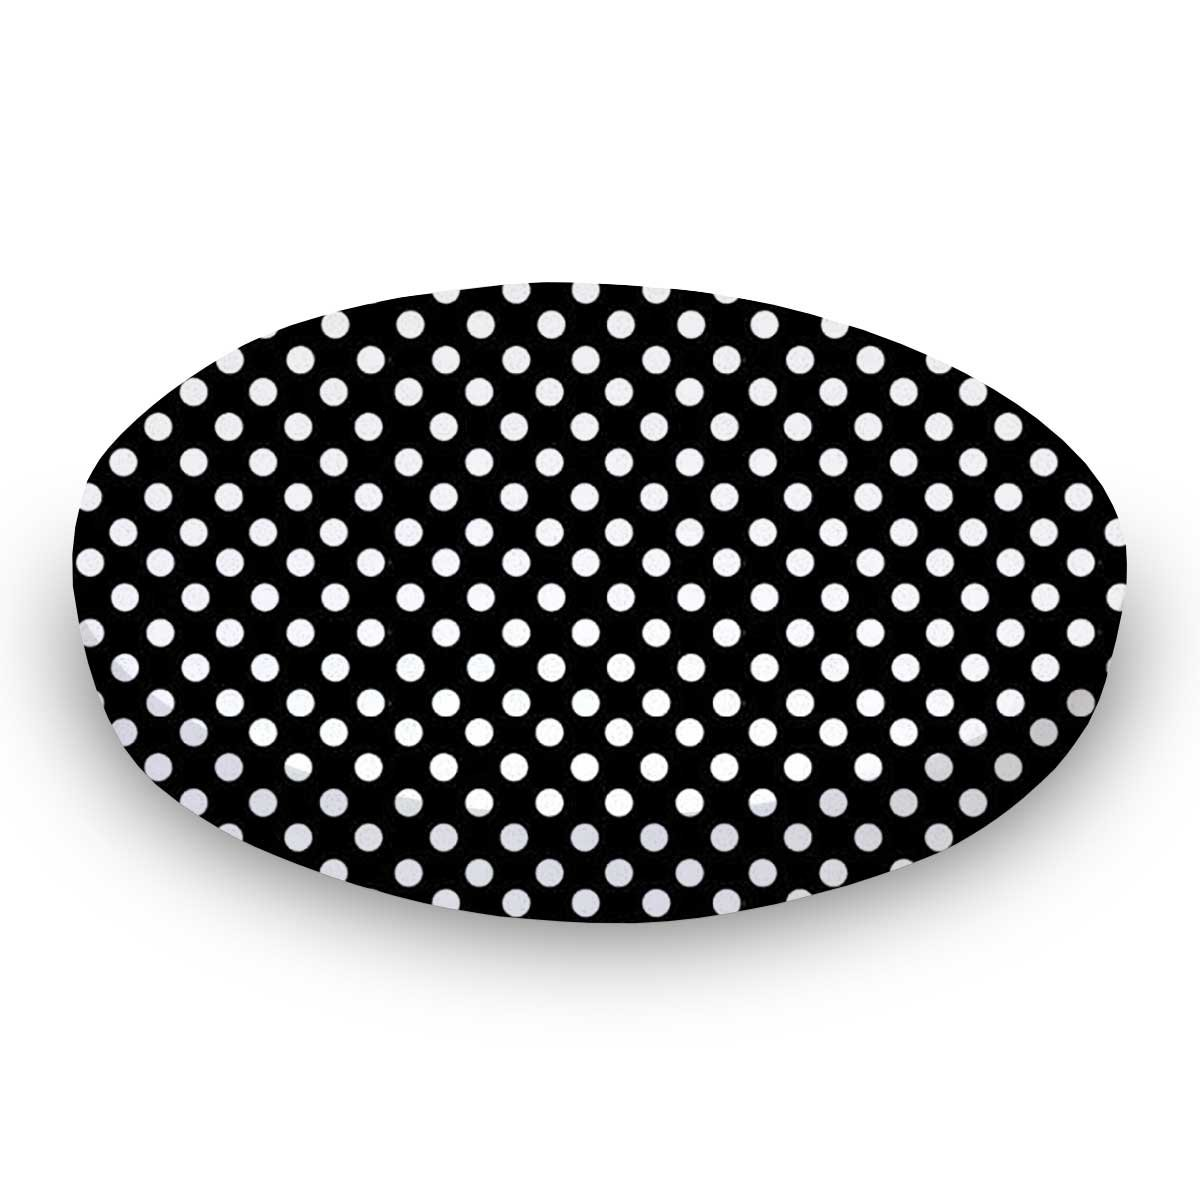 SheetWorld Fitted Oval (Stokke Mini) - Primary Polka Dots Black Woven - Made In USA